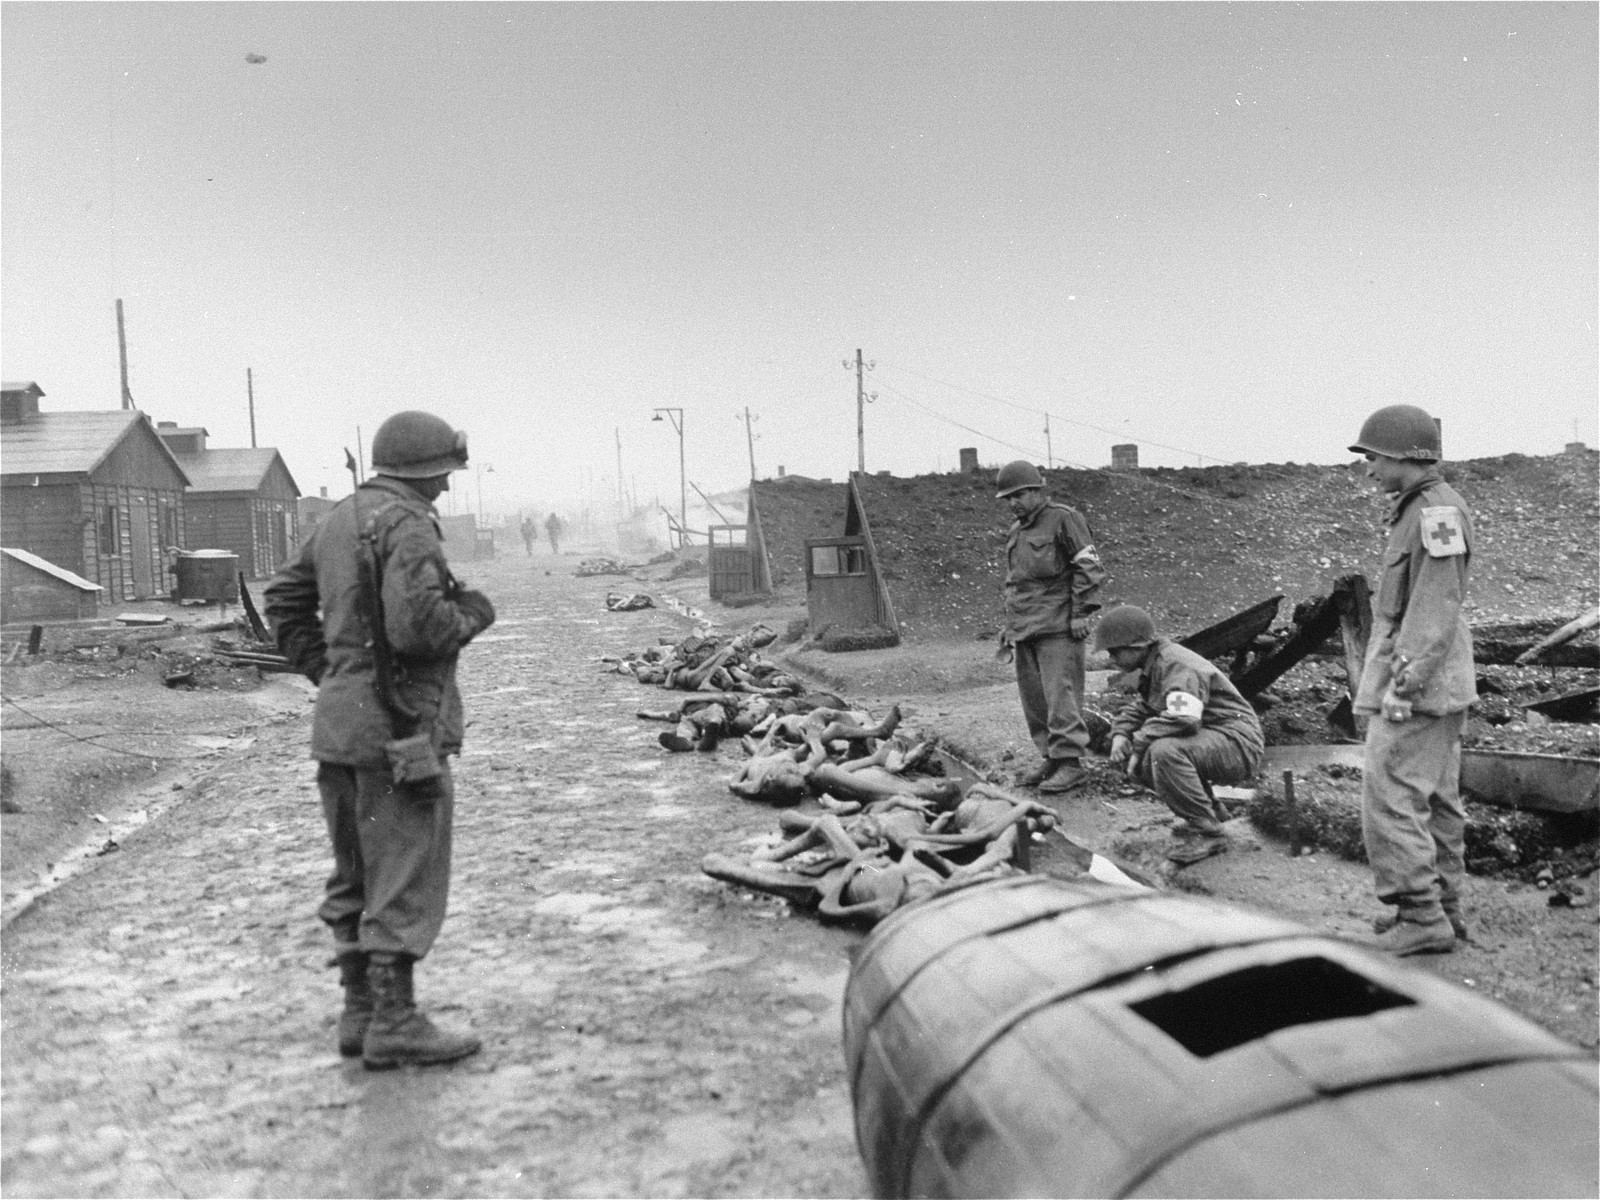 "Troops with the medical detachment of Combat Command A, 12th Armored Division, XXI Corps, U.S. 7th Army, examine the bodies of prisoners killed by the SS just prior to the evacuation of the camp.  Original Caption Reads, ""Landsberg Atrocity: the  emaciated bodies of victims of German cruelty at Landsberg prison. Before retreating in the face of seventh Army attack, the Jewish prisoners were locked in their huts and told they would be shot if they came out. Then the buildings were set on fire. some burned to death in their huts, others found strength  to break down the doors and crawl out to die in the streets. Most prisoners were naked. Some had remnants of clothing on their charred bodies. Here medics examine corpses in front of the ruins of a charred hut."""